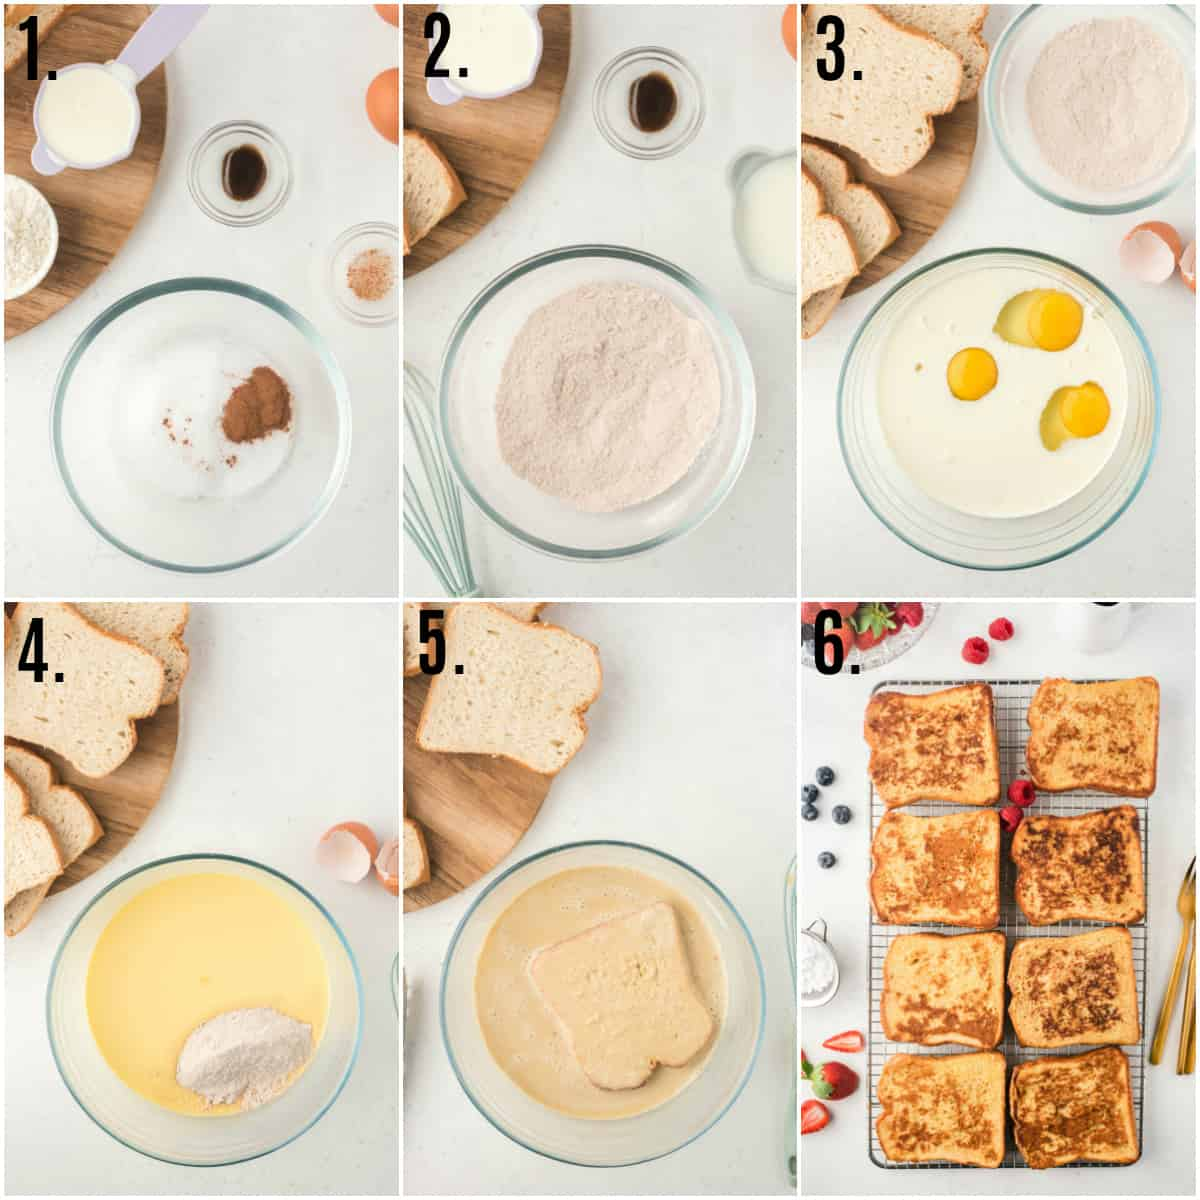 Step by step photos on how to make French Toast Recipe